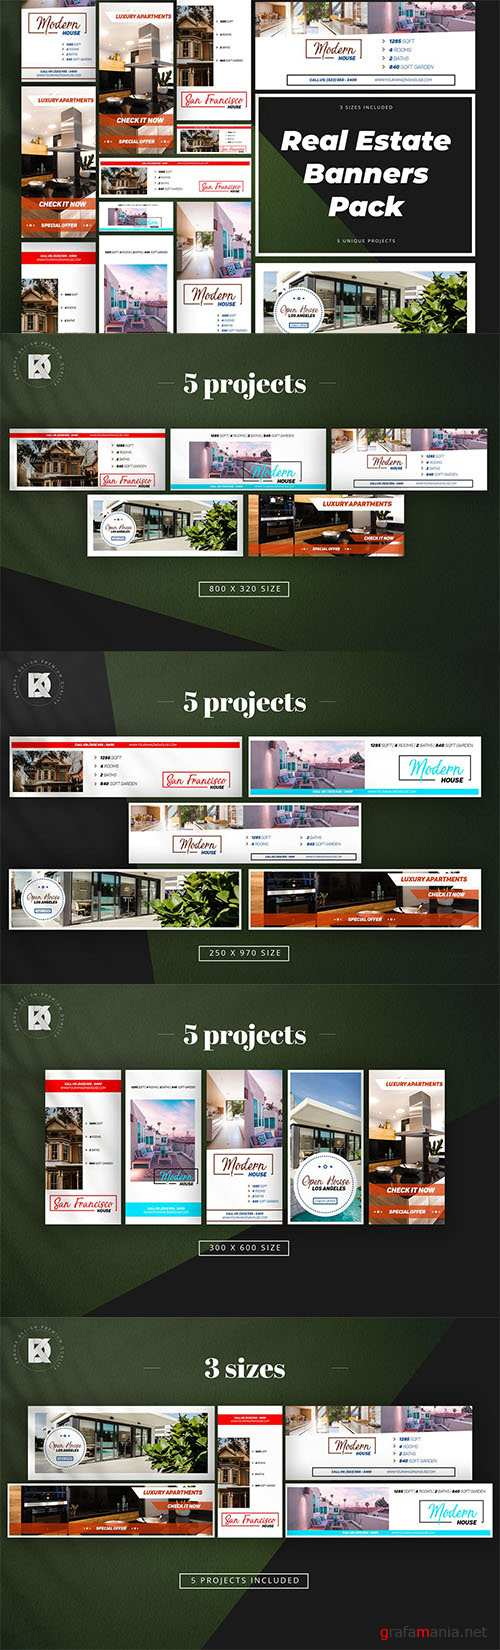 Real Estate Banner Pack PSD Templates